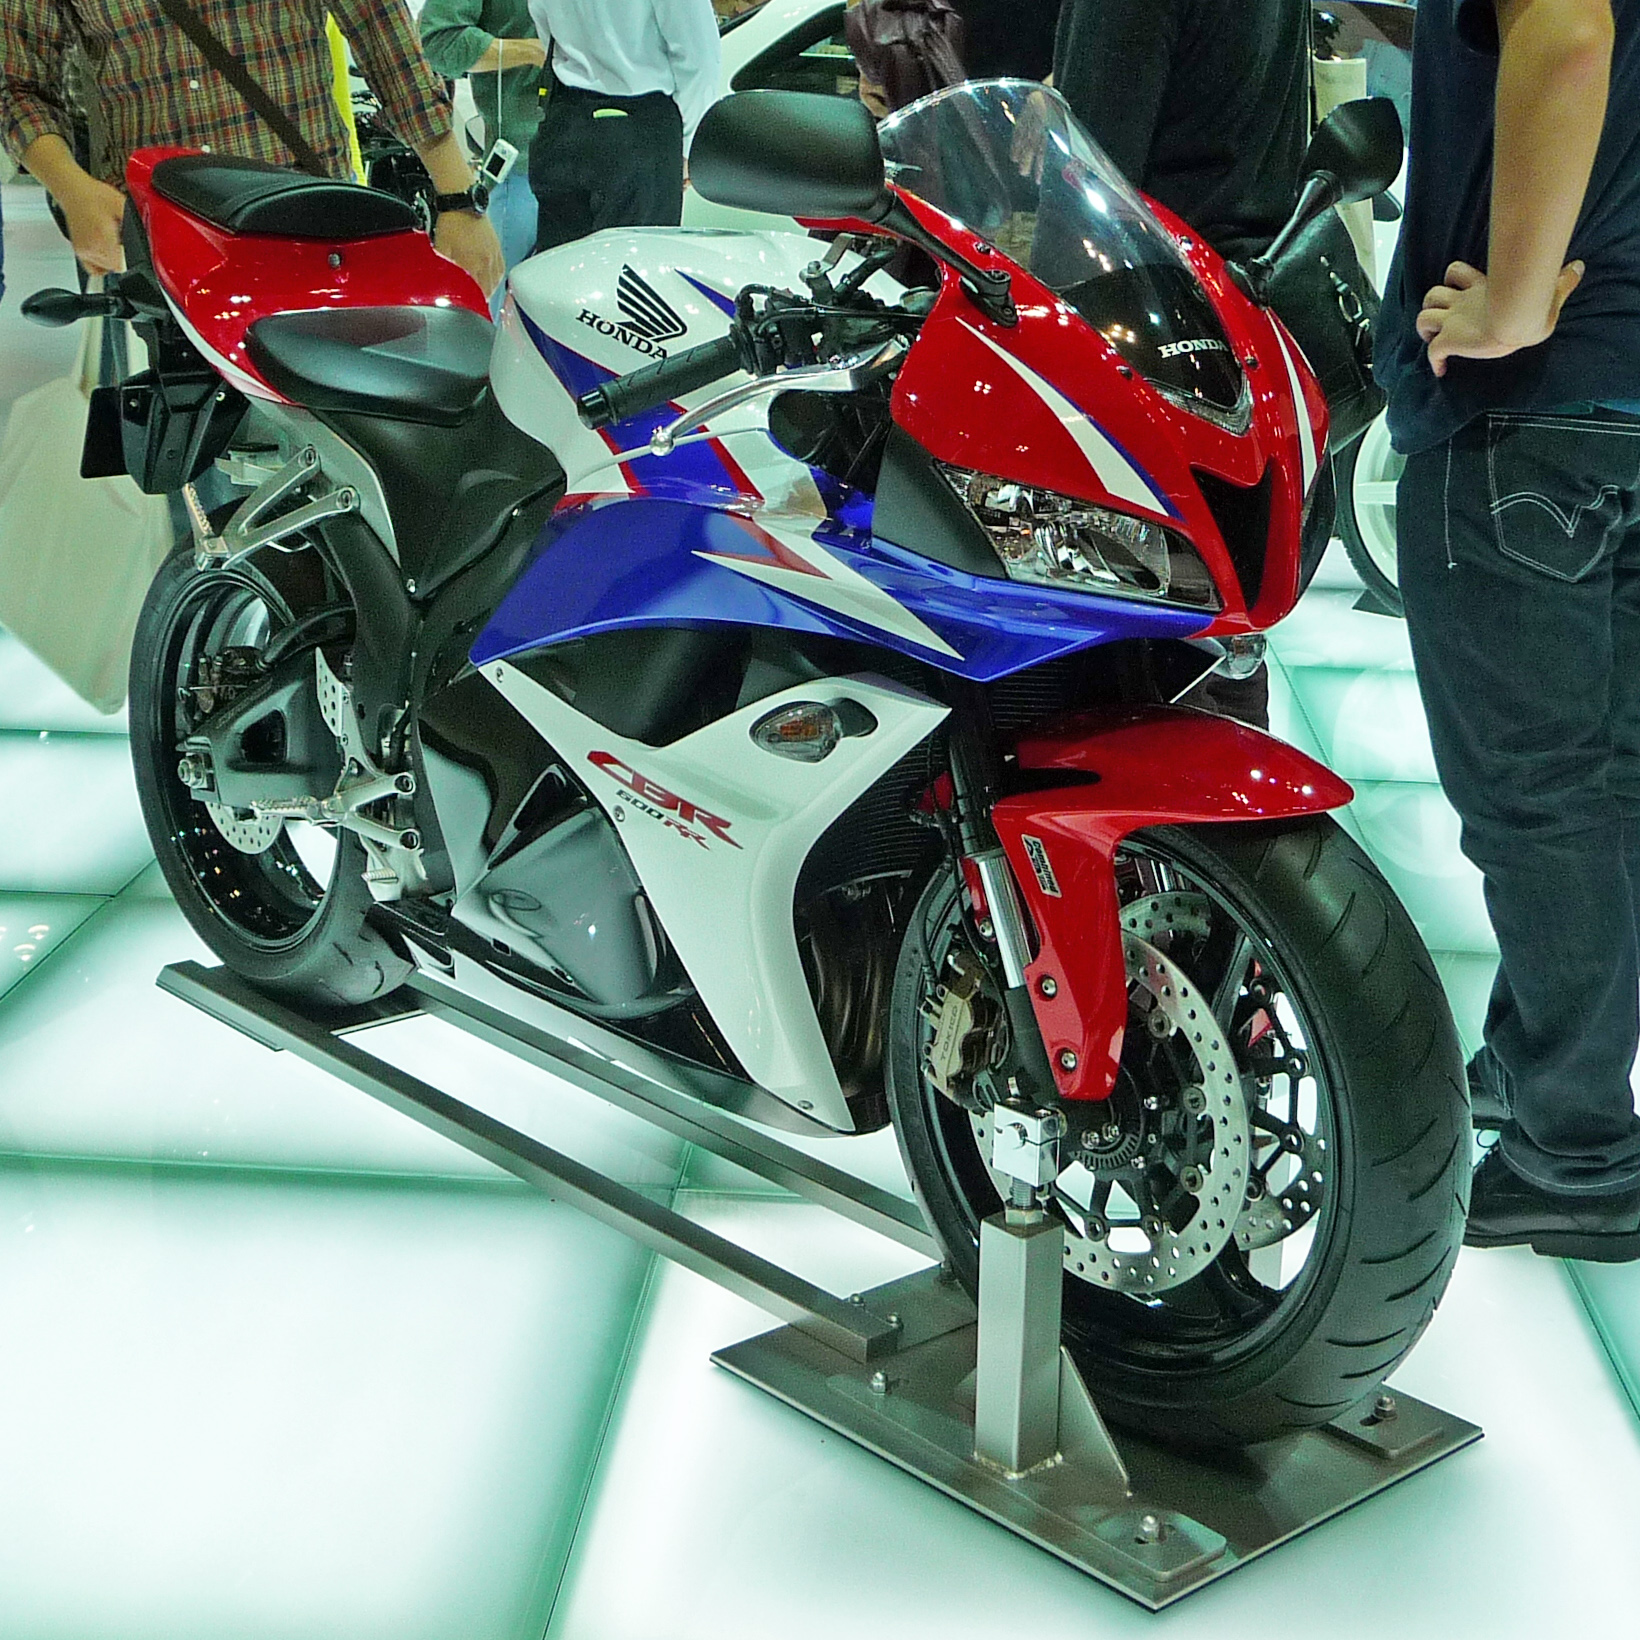 Exceptionnel File:Honda CBR600RR ABS At The Tokyo Motor Show 2009.JPG